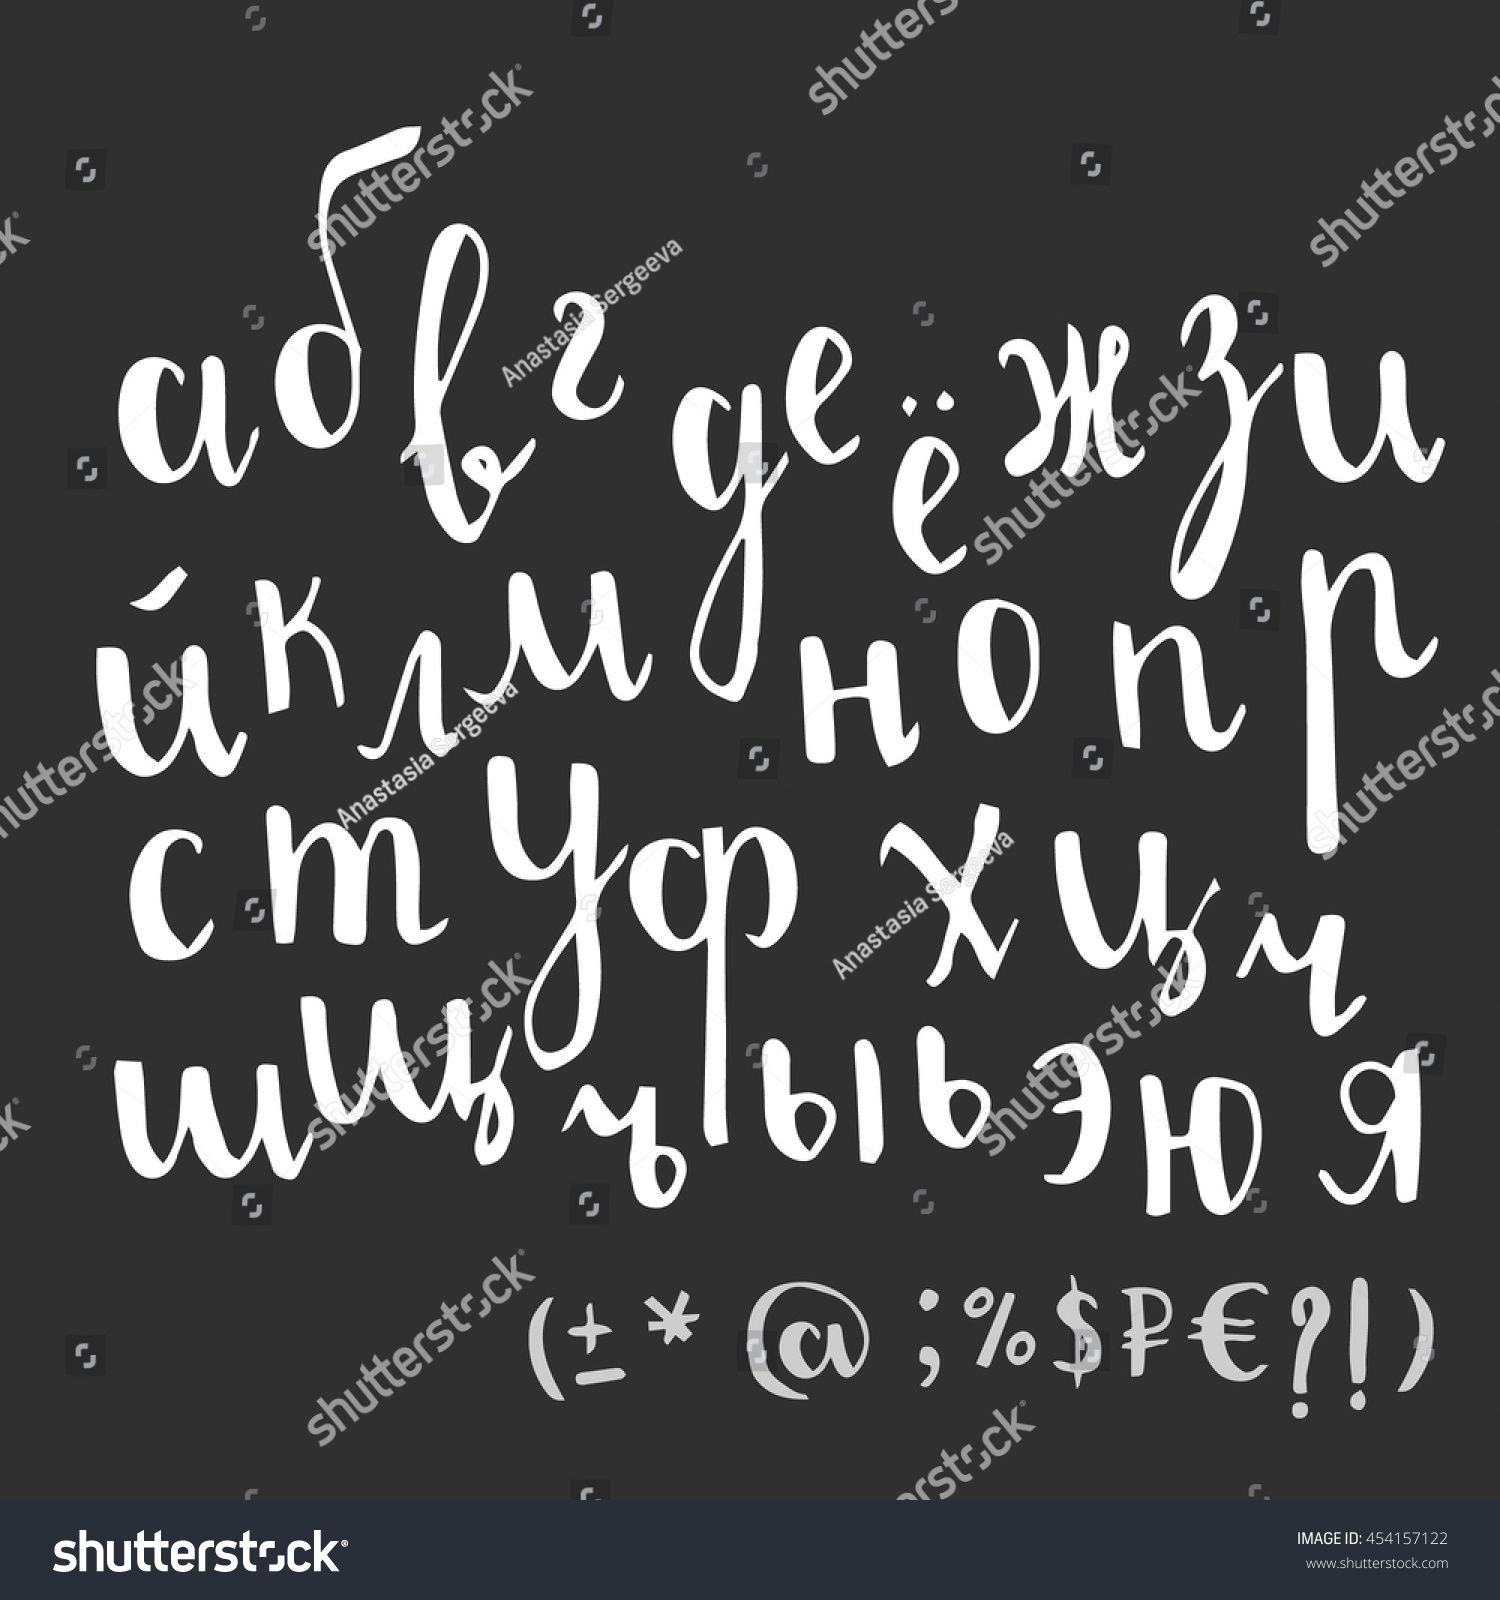 Brush style cyrillic russian alphabet calligraphy stock vector brush style cyrillic russian alphabet calligraphy low case letters cursive font with special symbols buycottarizona Gallery